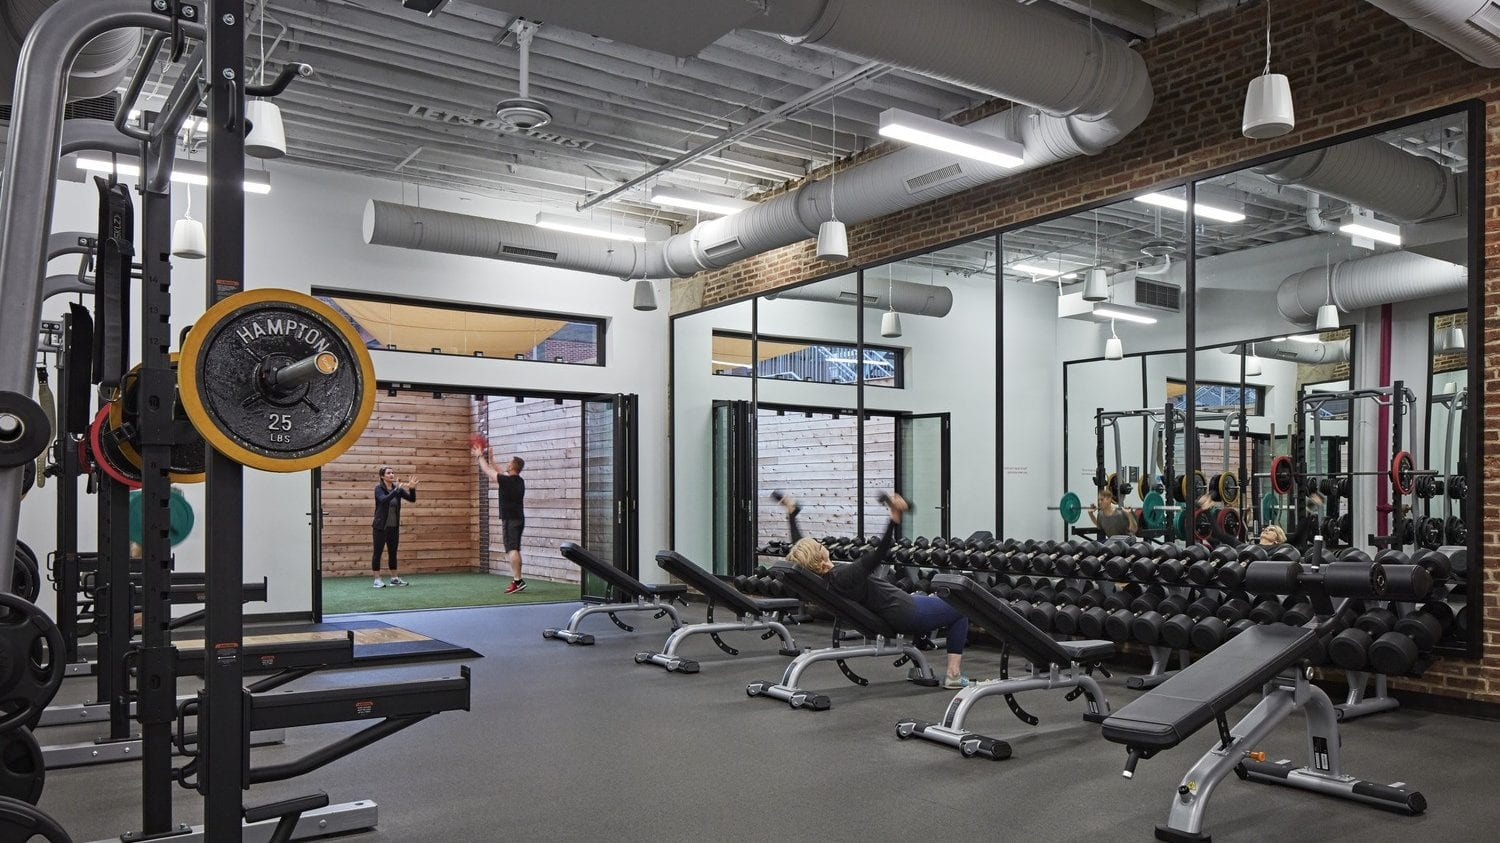 The gym area at Wel at Humana, Louisville, KY